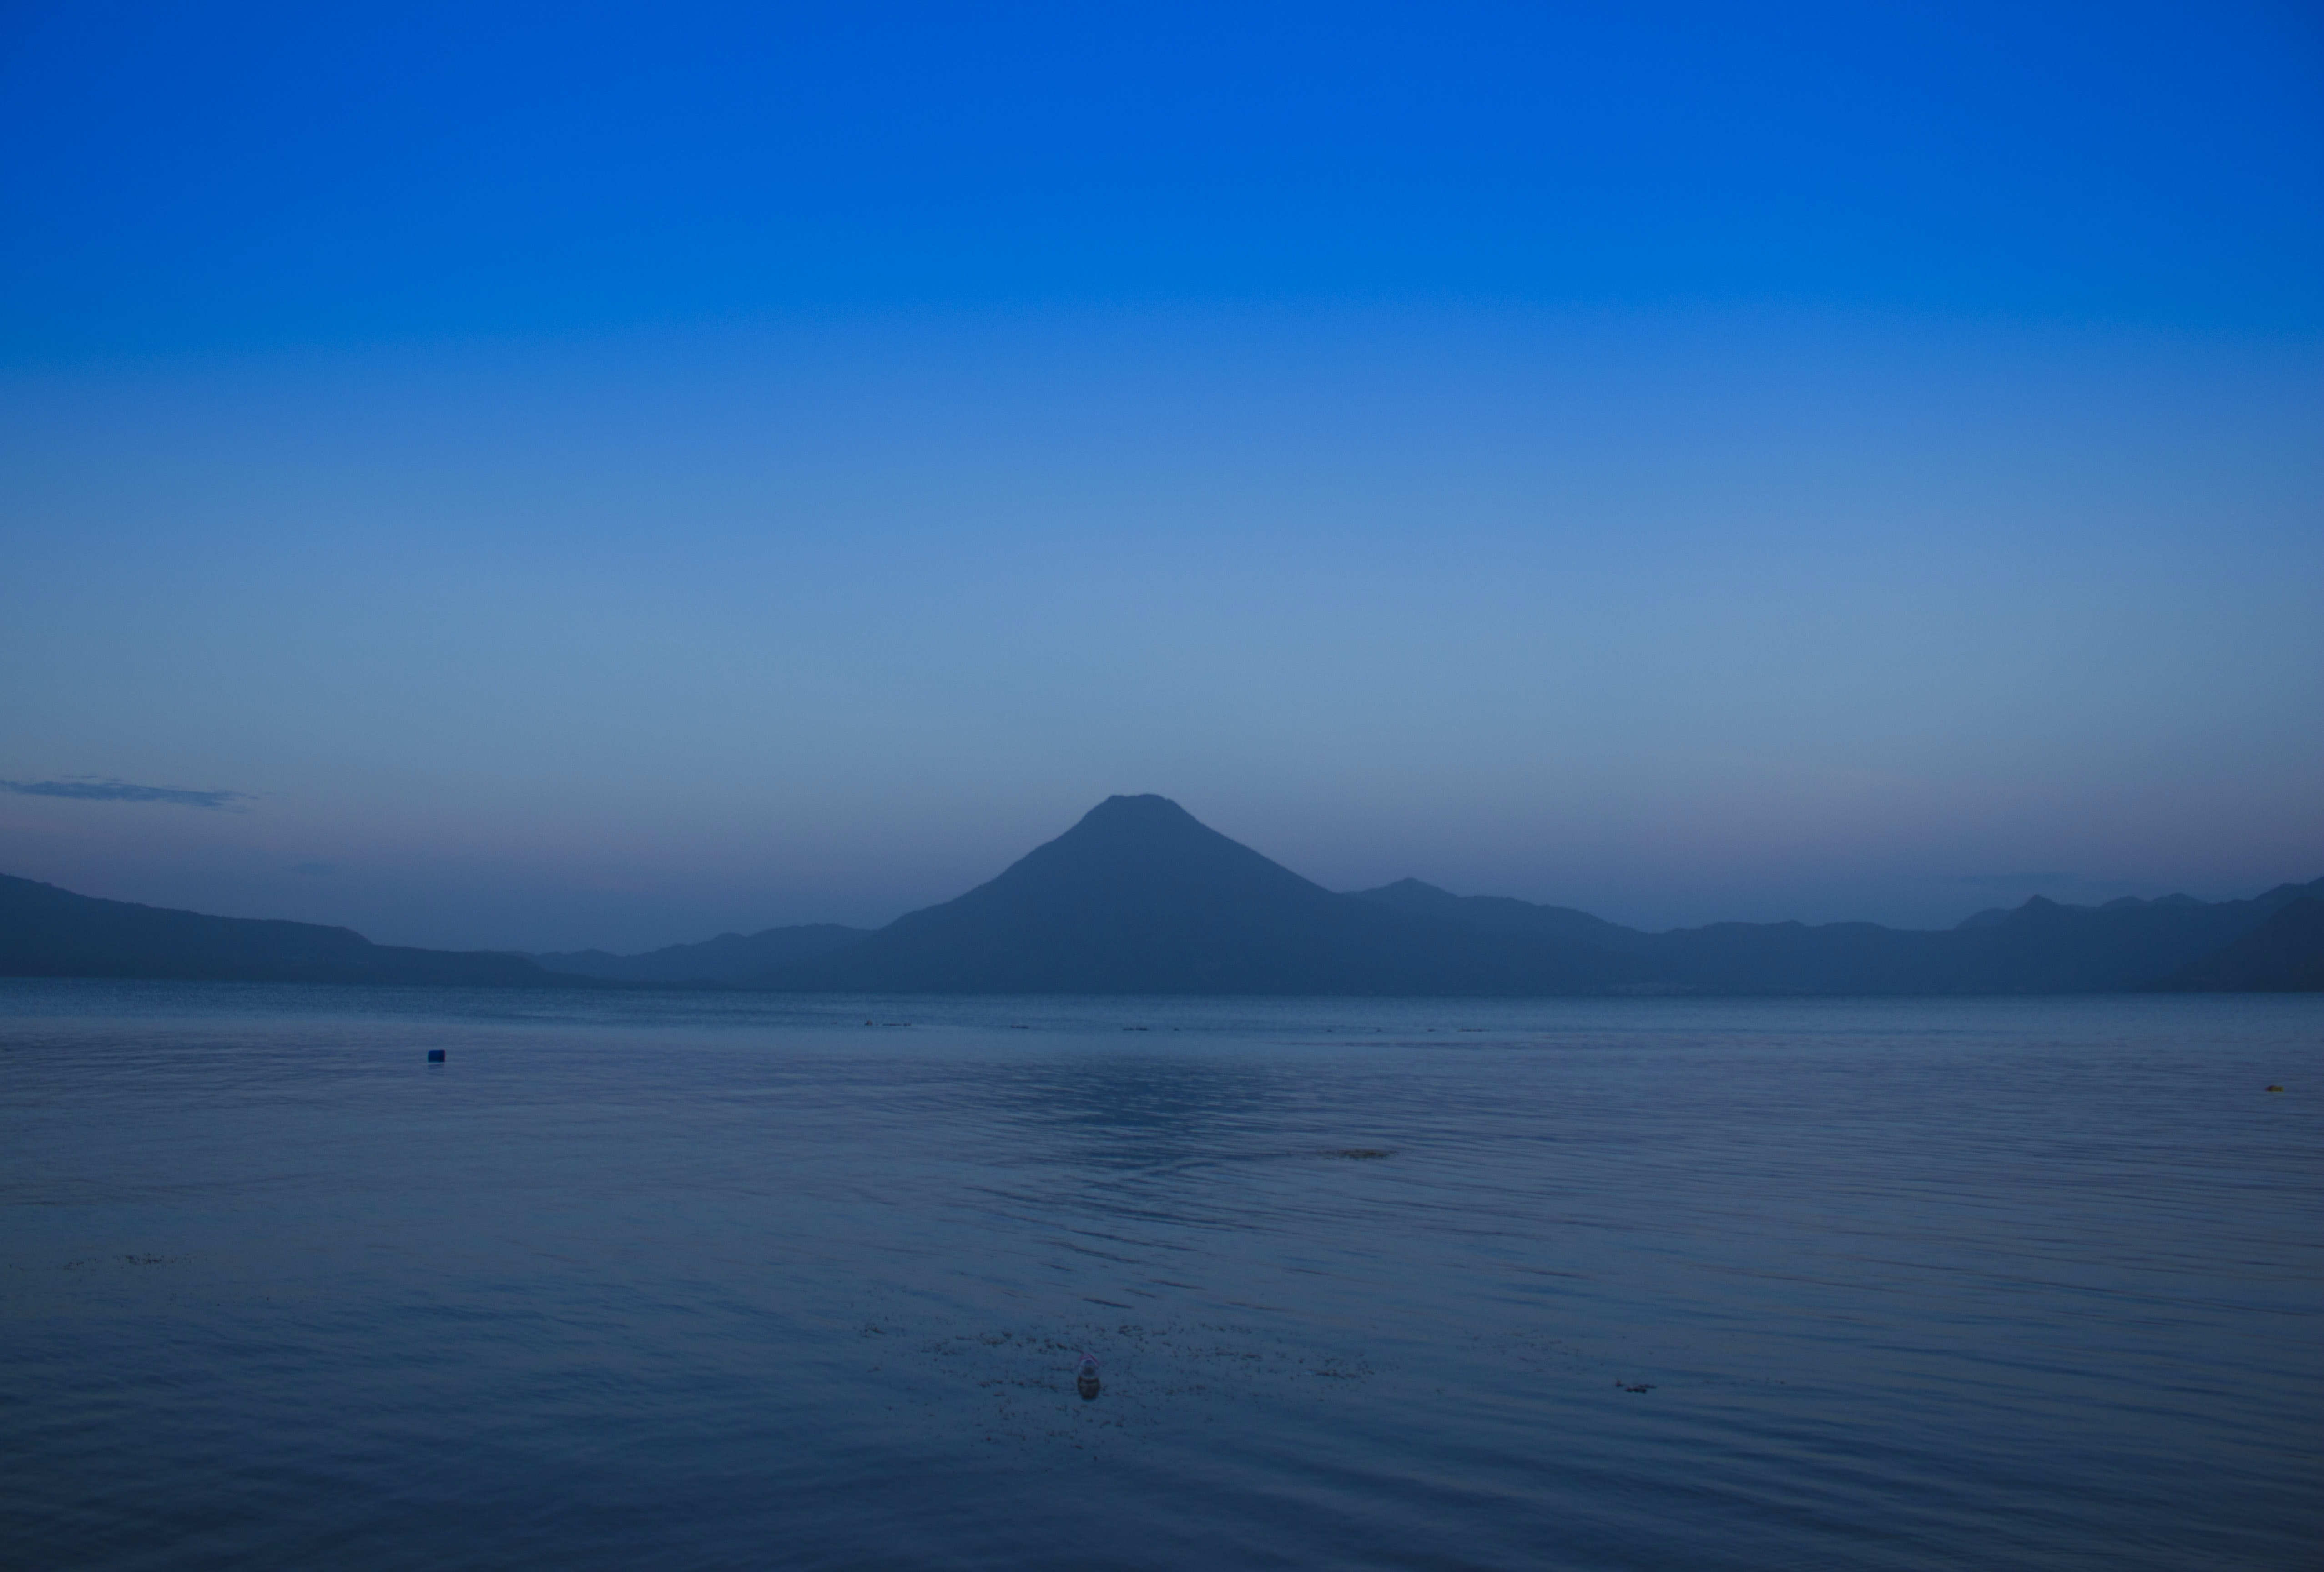 silhouette of mountains between sea and sky